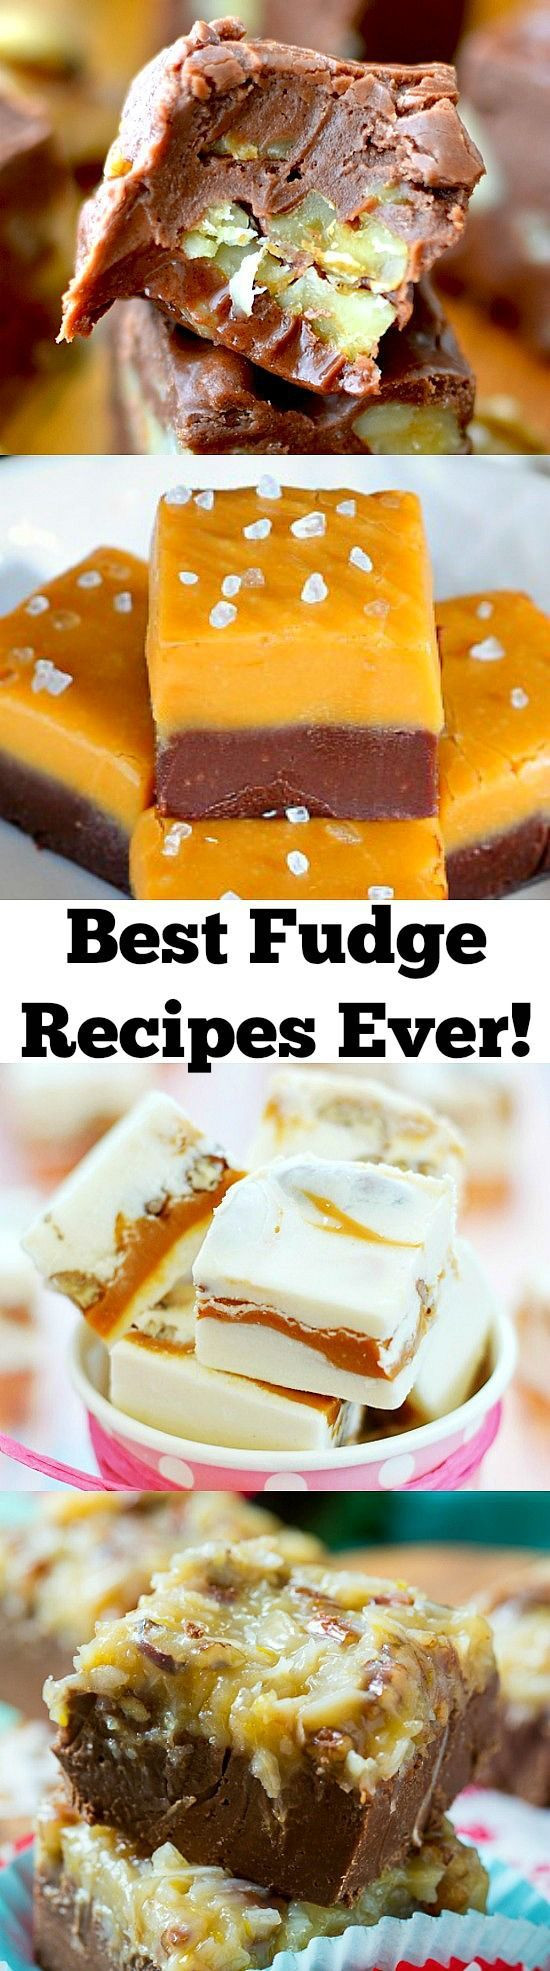 Best Fudge Recipes For Christmas  25 Fabulous Fudge Recipes for Gift Giving and Holiday